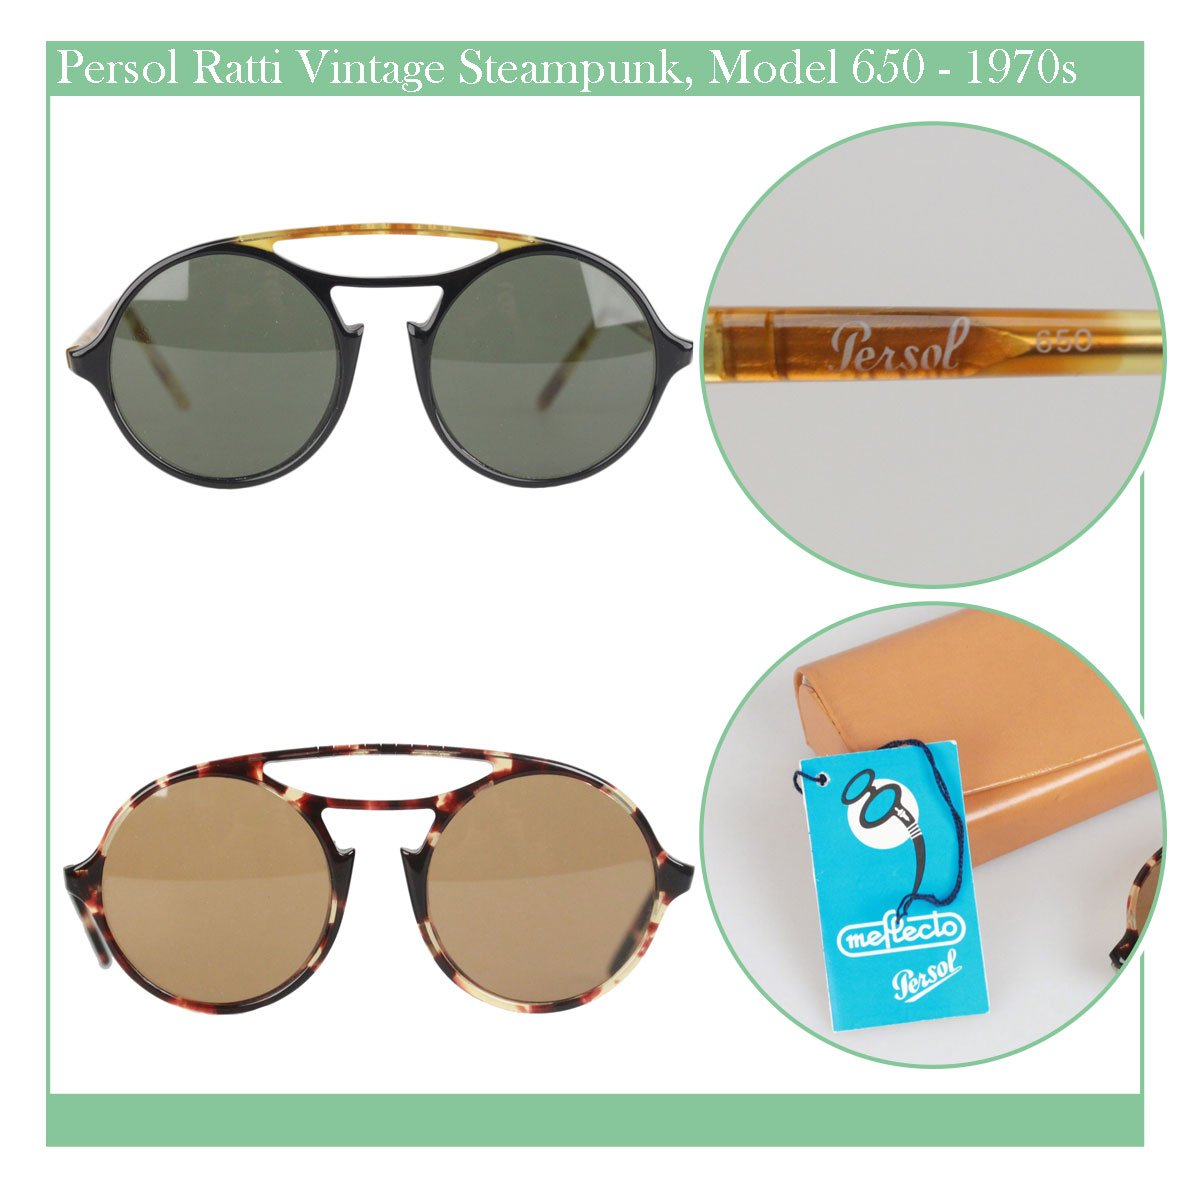 2c75044db430e Persol  a guide on what to look for and how - VintageMania